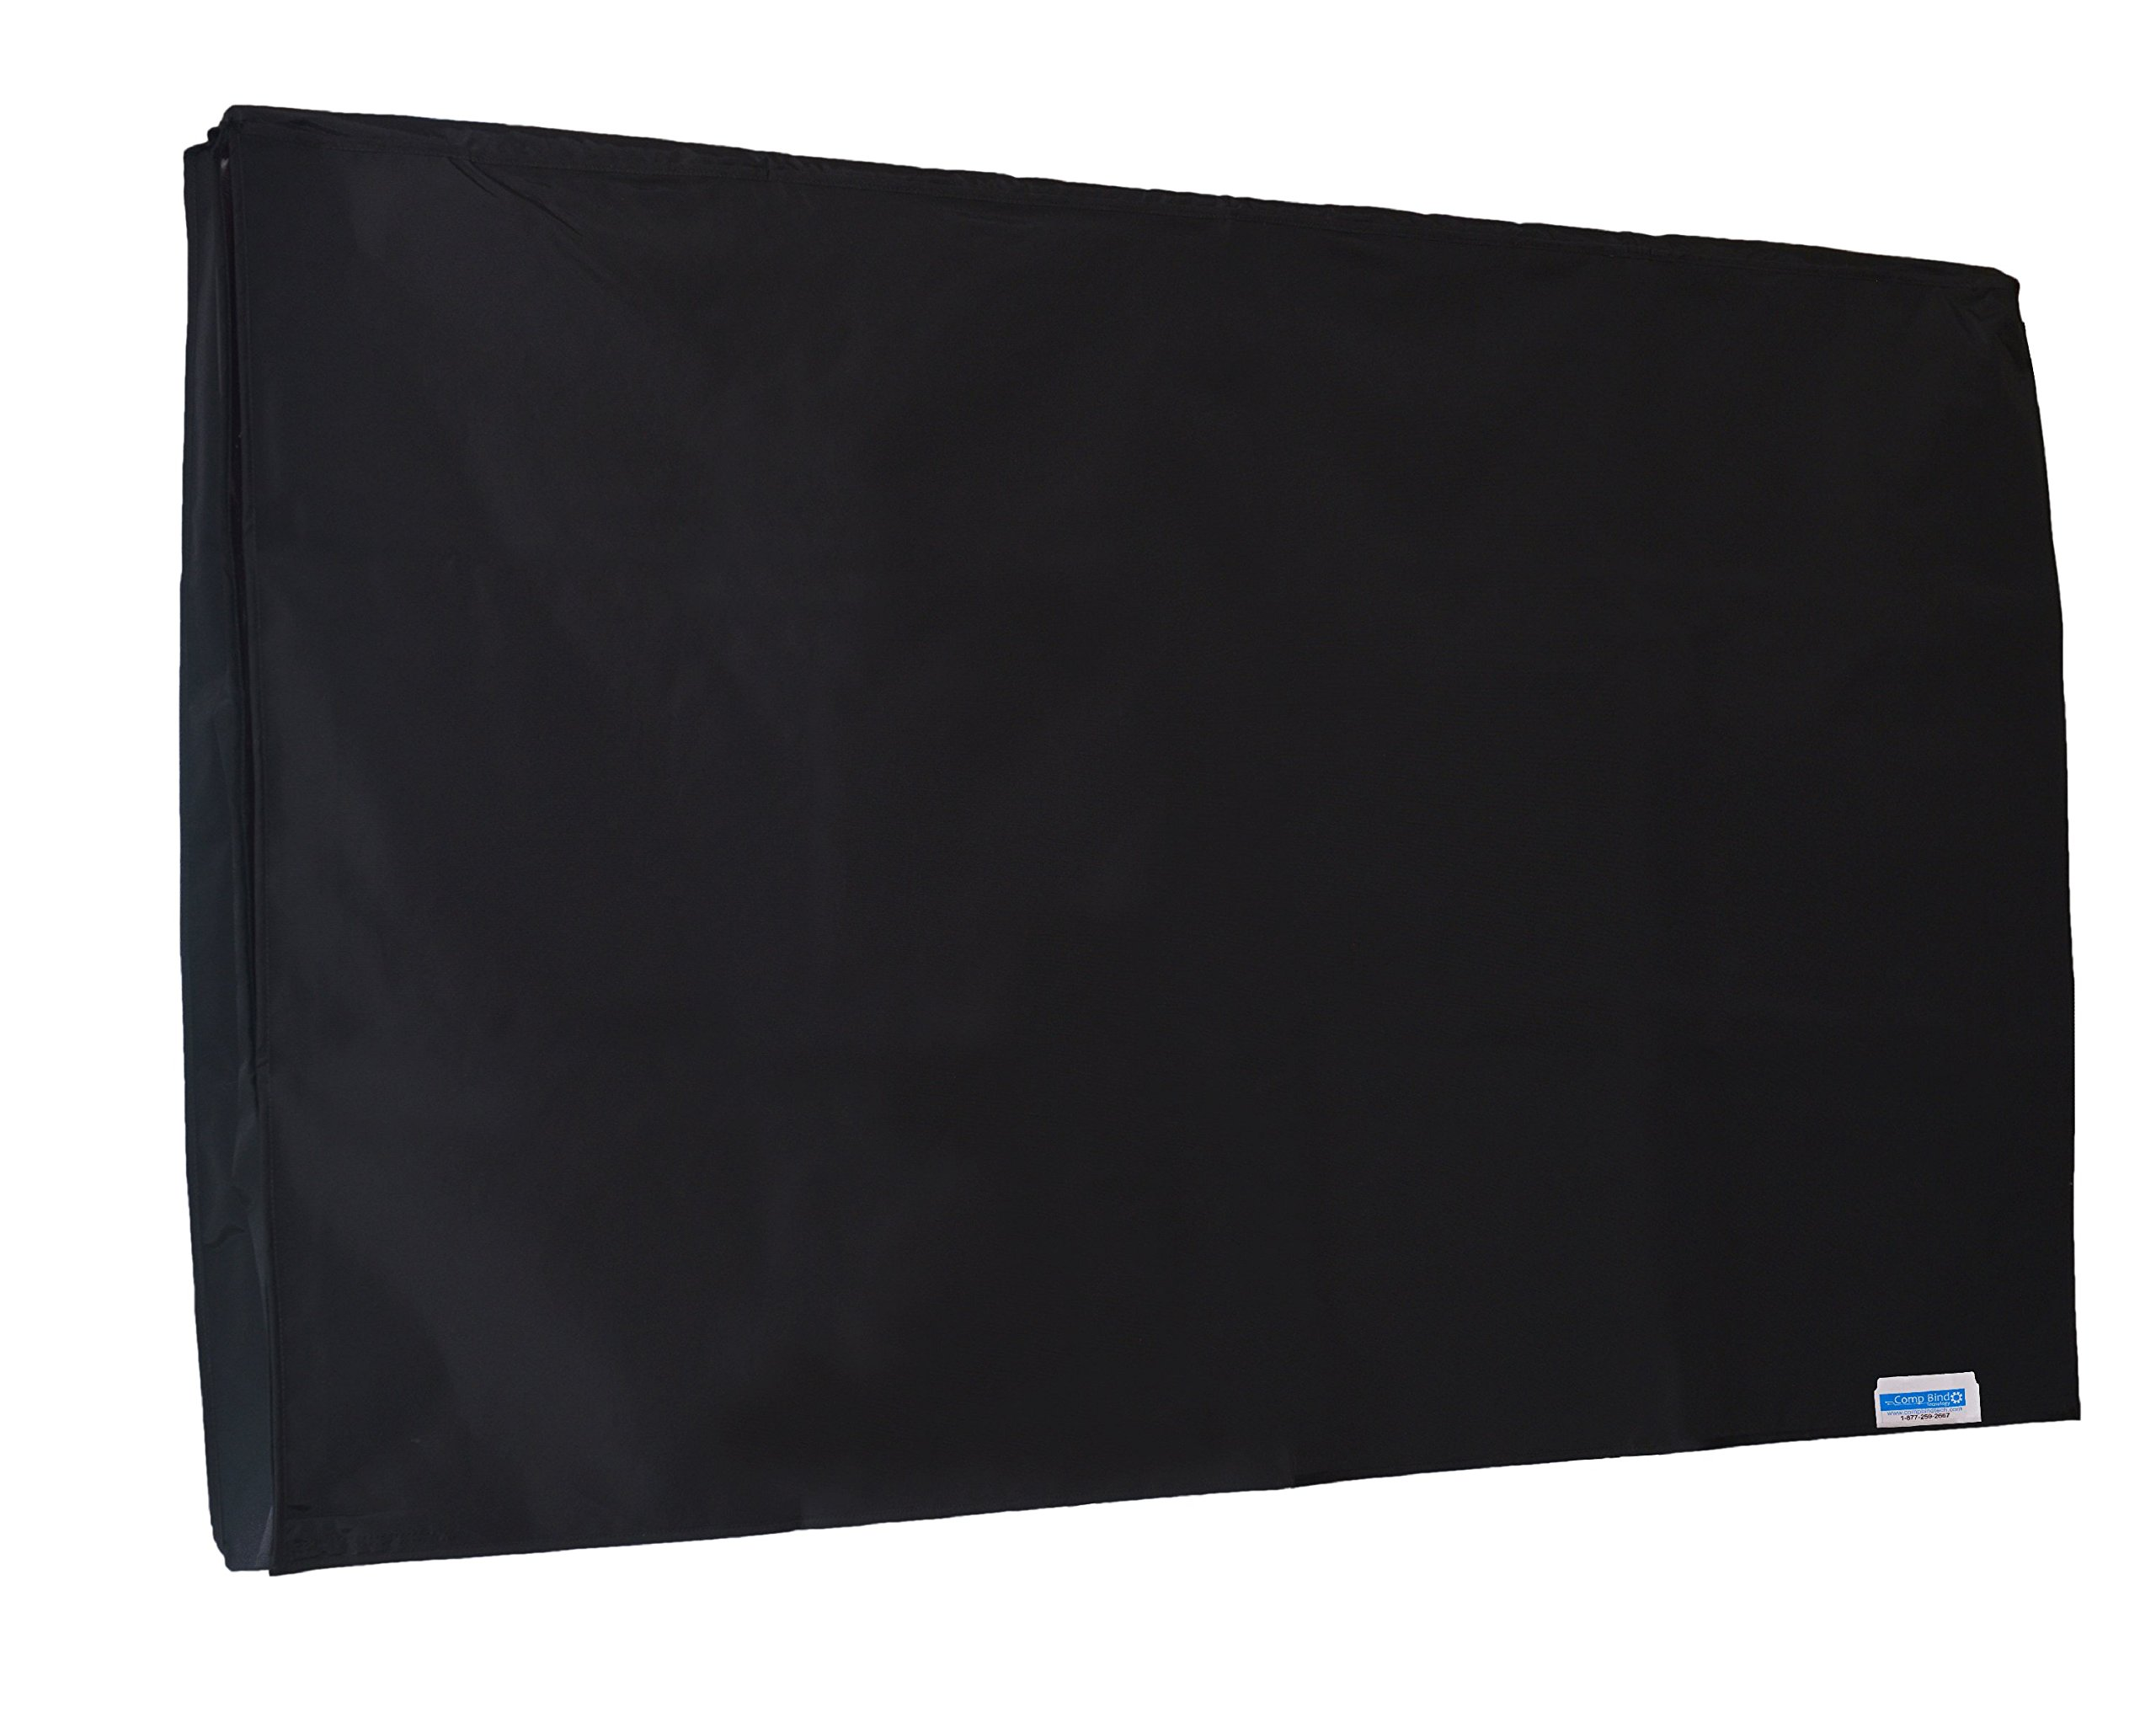 Comp Bind Technology Black TV COVER for Vizio E70-E3 70'' 4K SMART TV. Outdoor, Waterproof and Heavy Duty COVER By Comp Bind Technology Dimensions 62''W x 3''D x 35.5''H